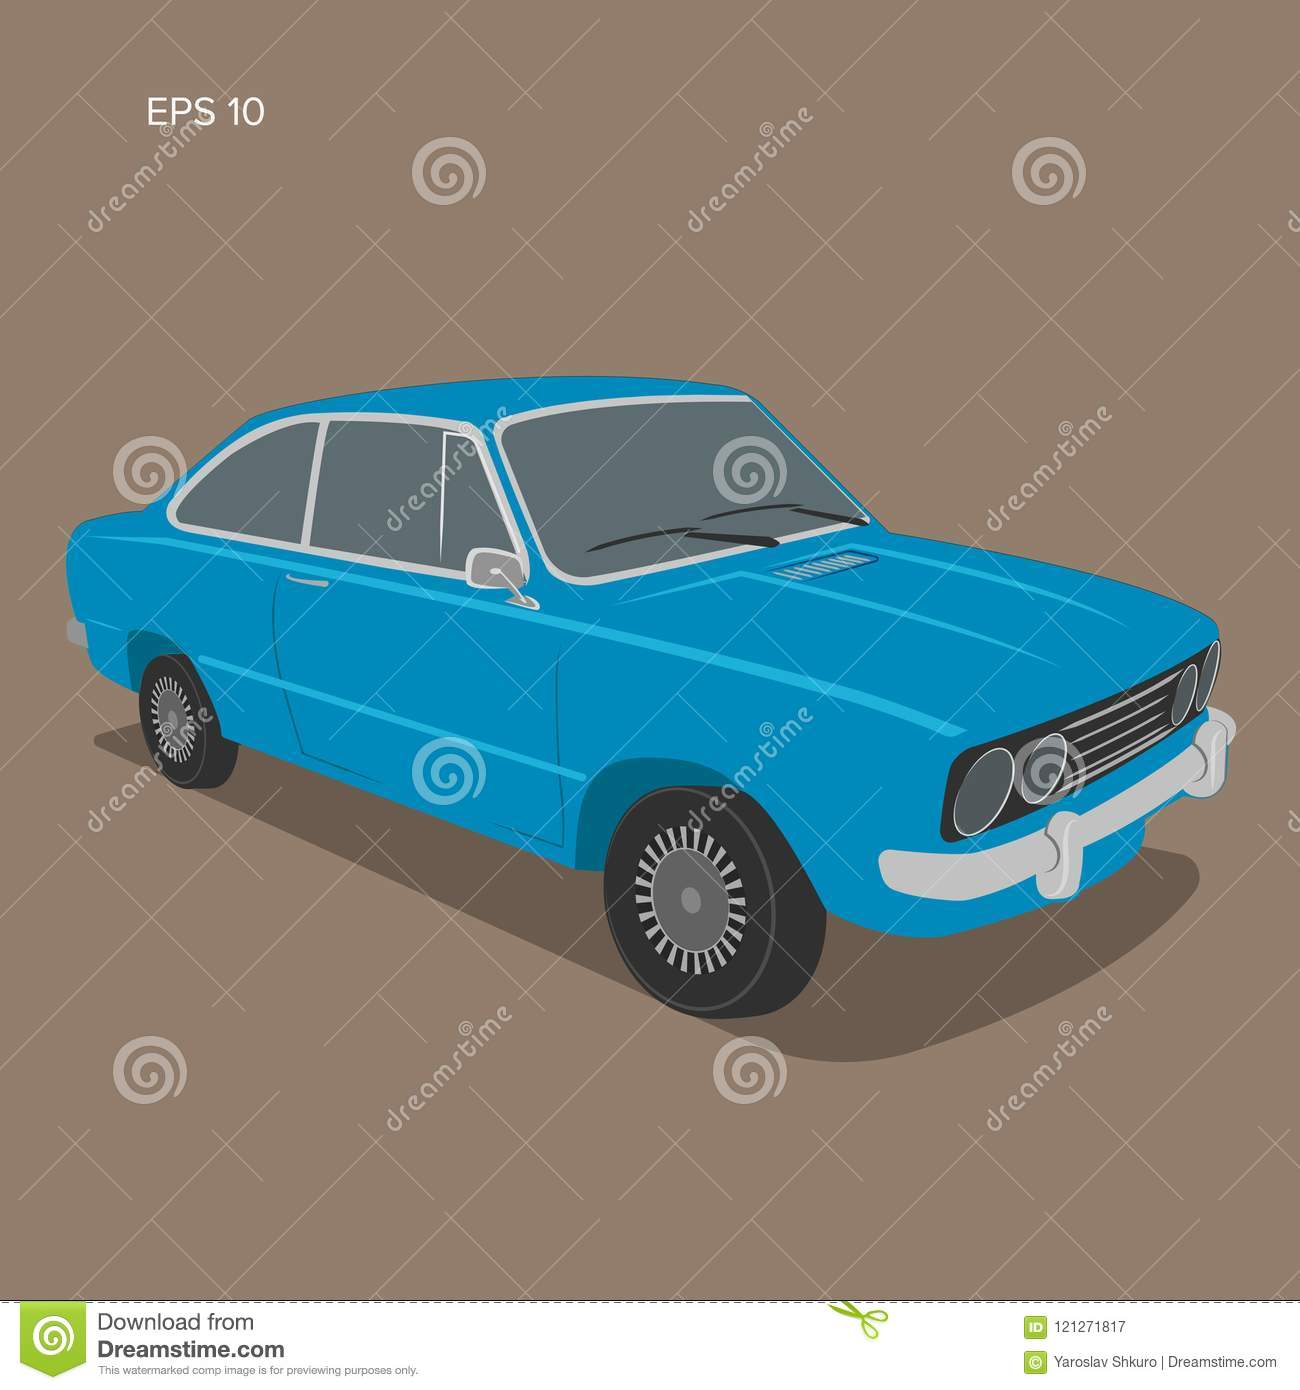 Ford escort europeo ilustraciones